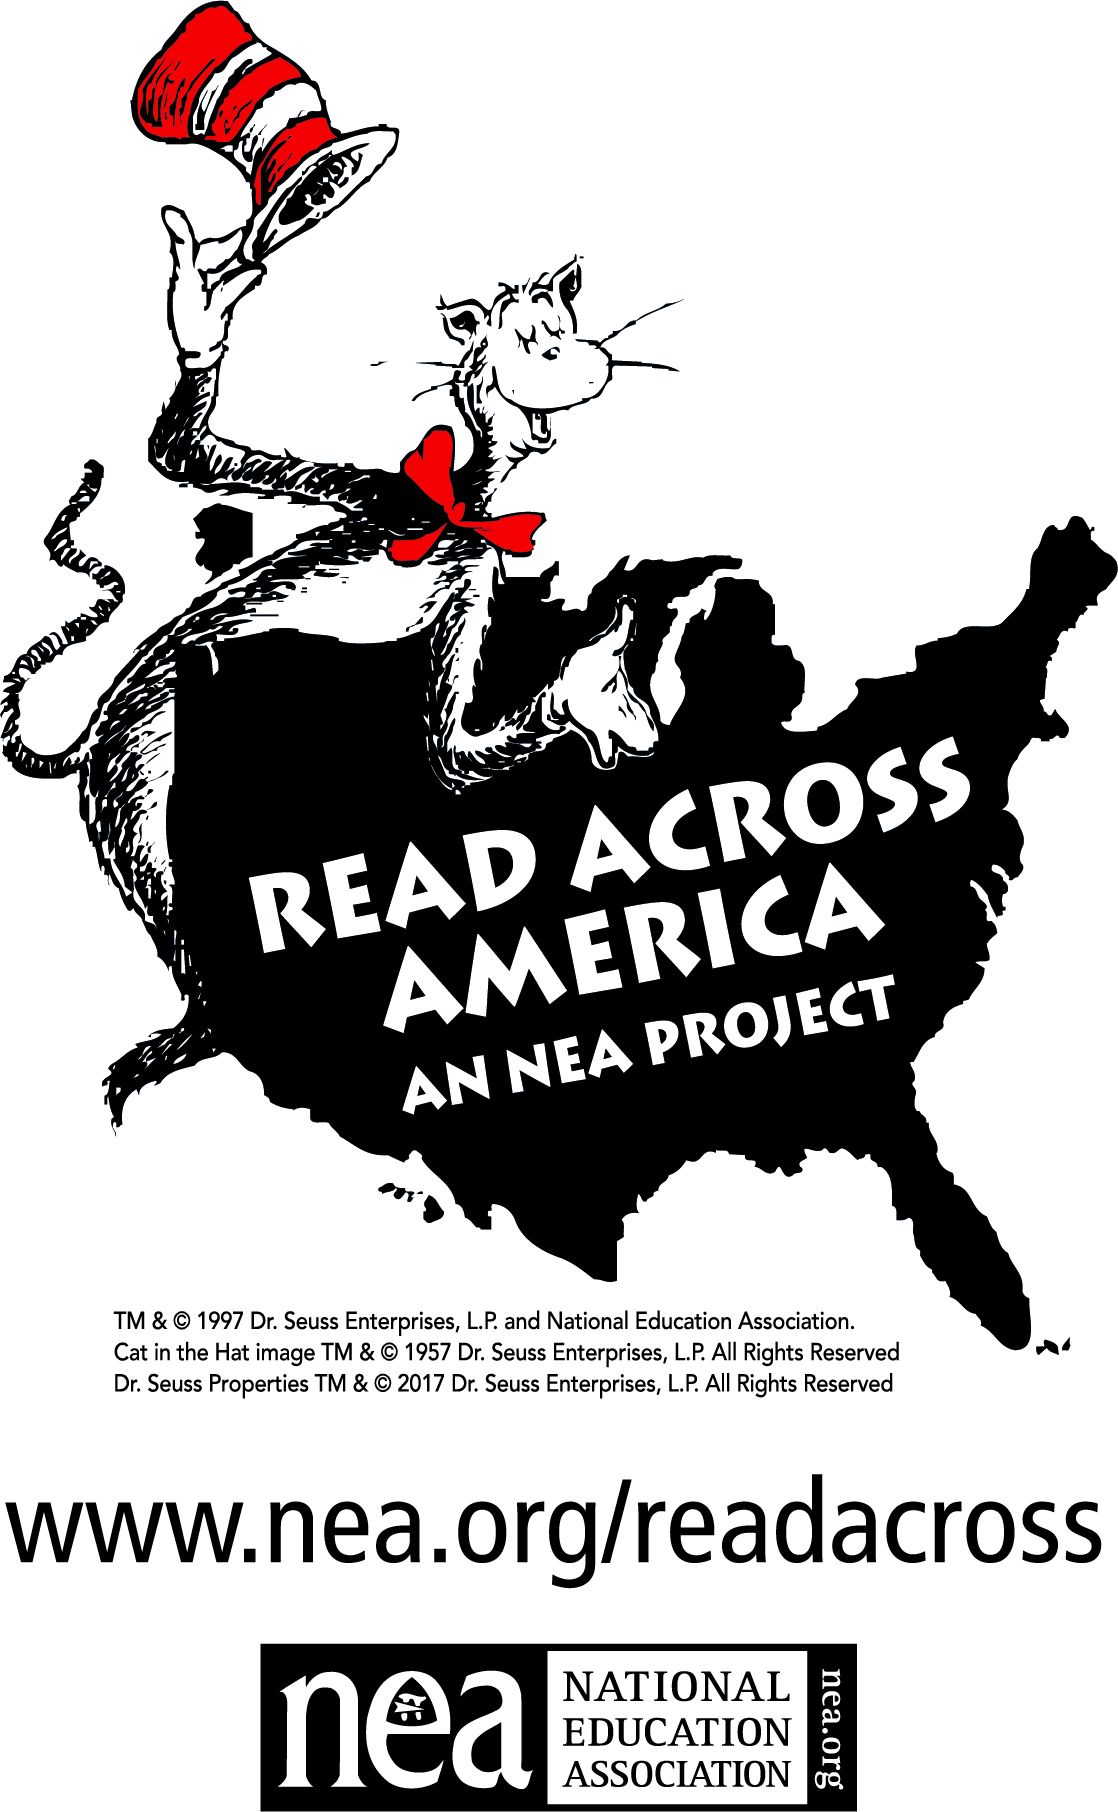 Celebrate Read Across America Day on March 2nd by reading an eco-friendly book with your child.